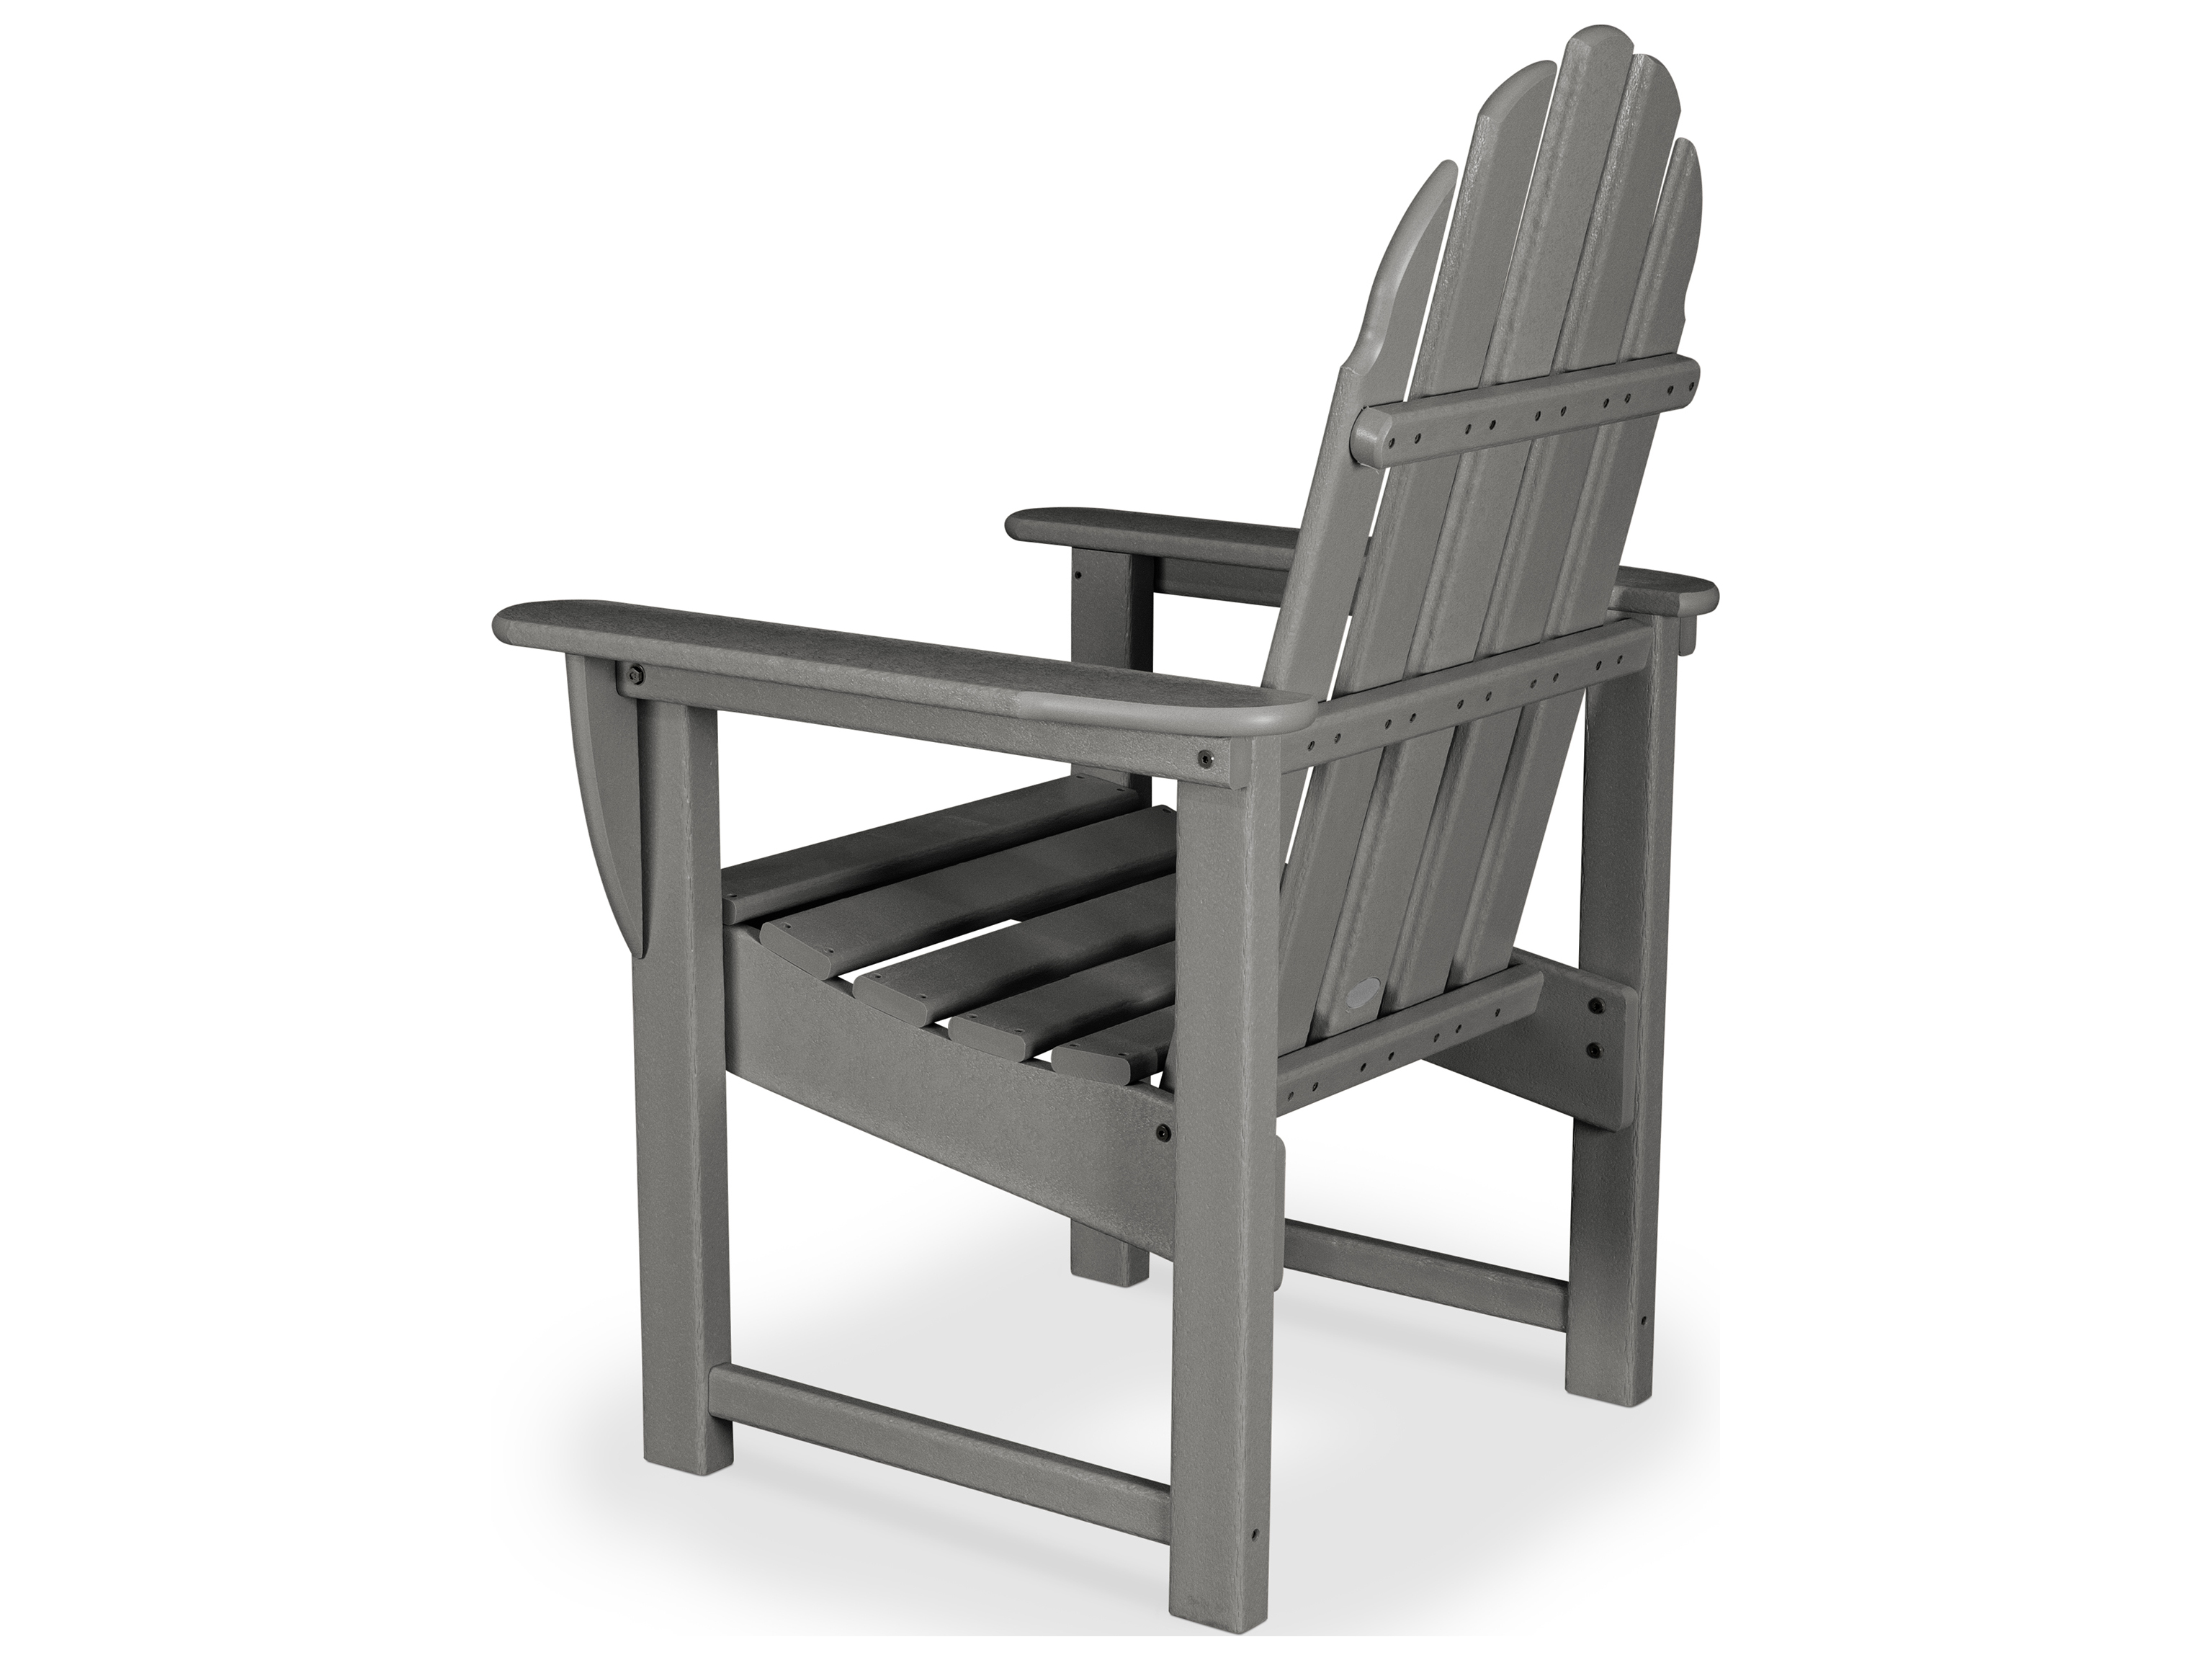 Recycled Adirondack Chairs Polywood Classic Adirondack Recycled Plastic Dining Chair